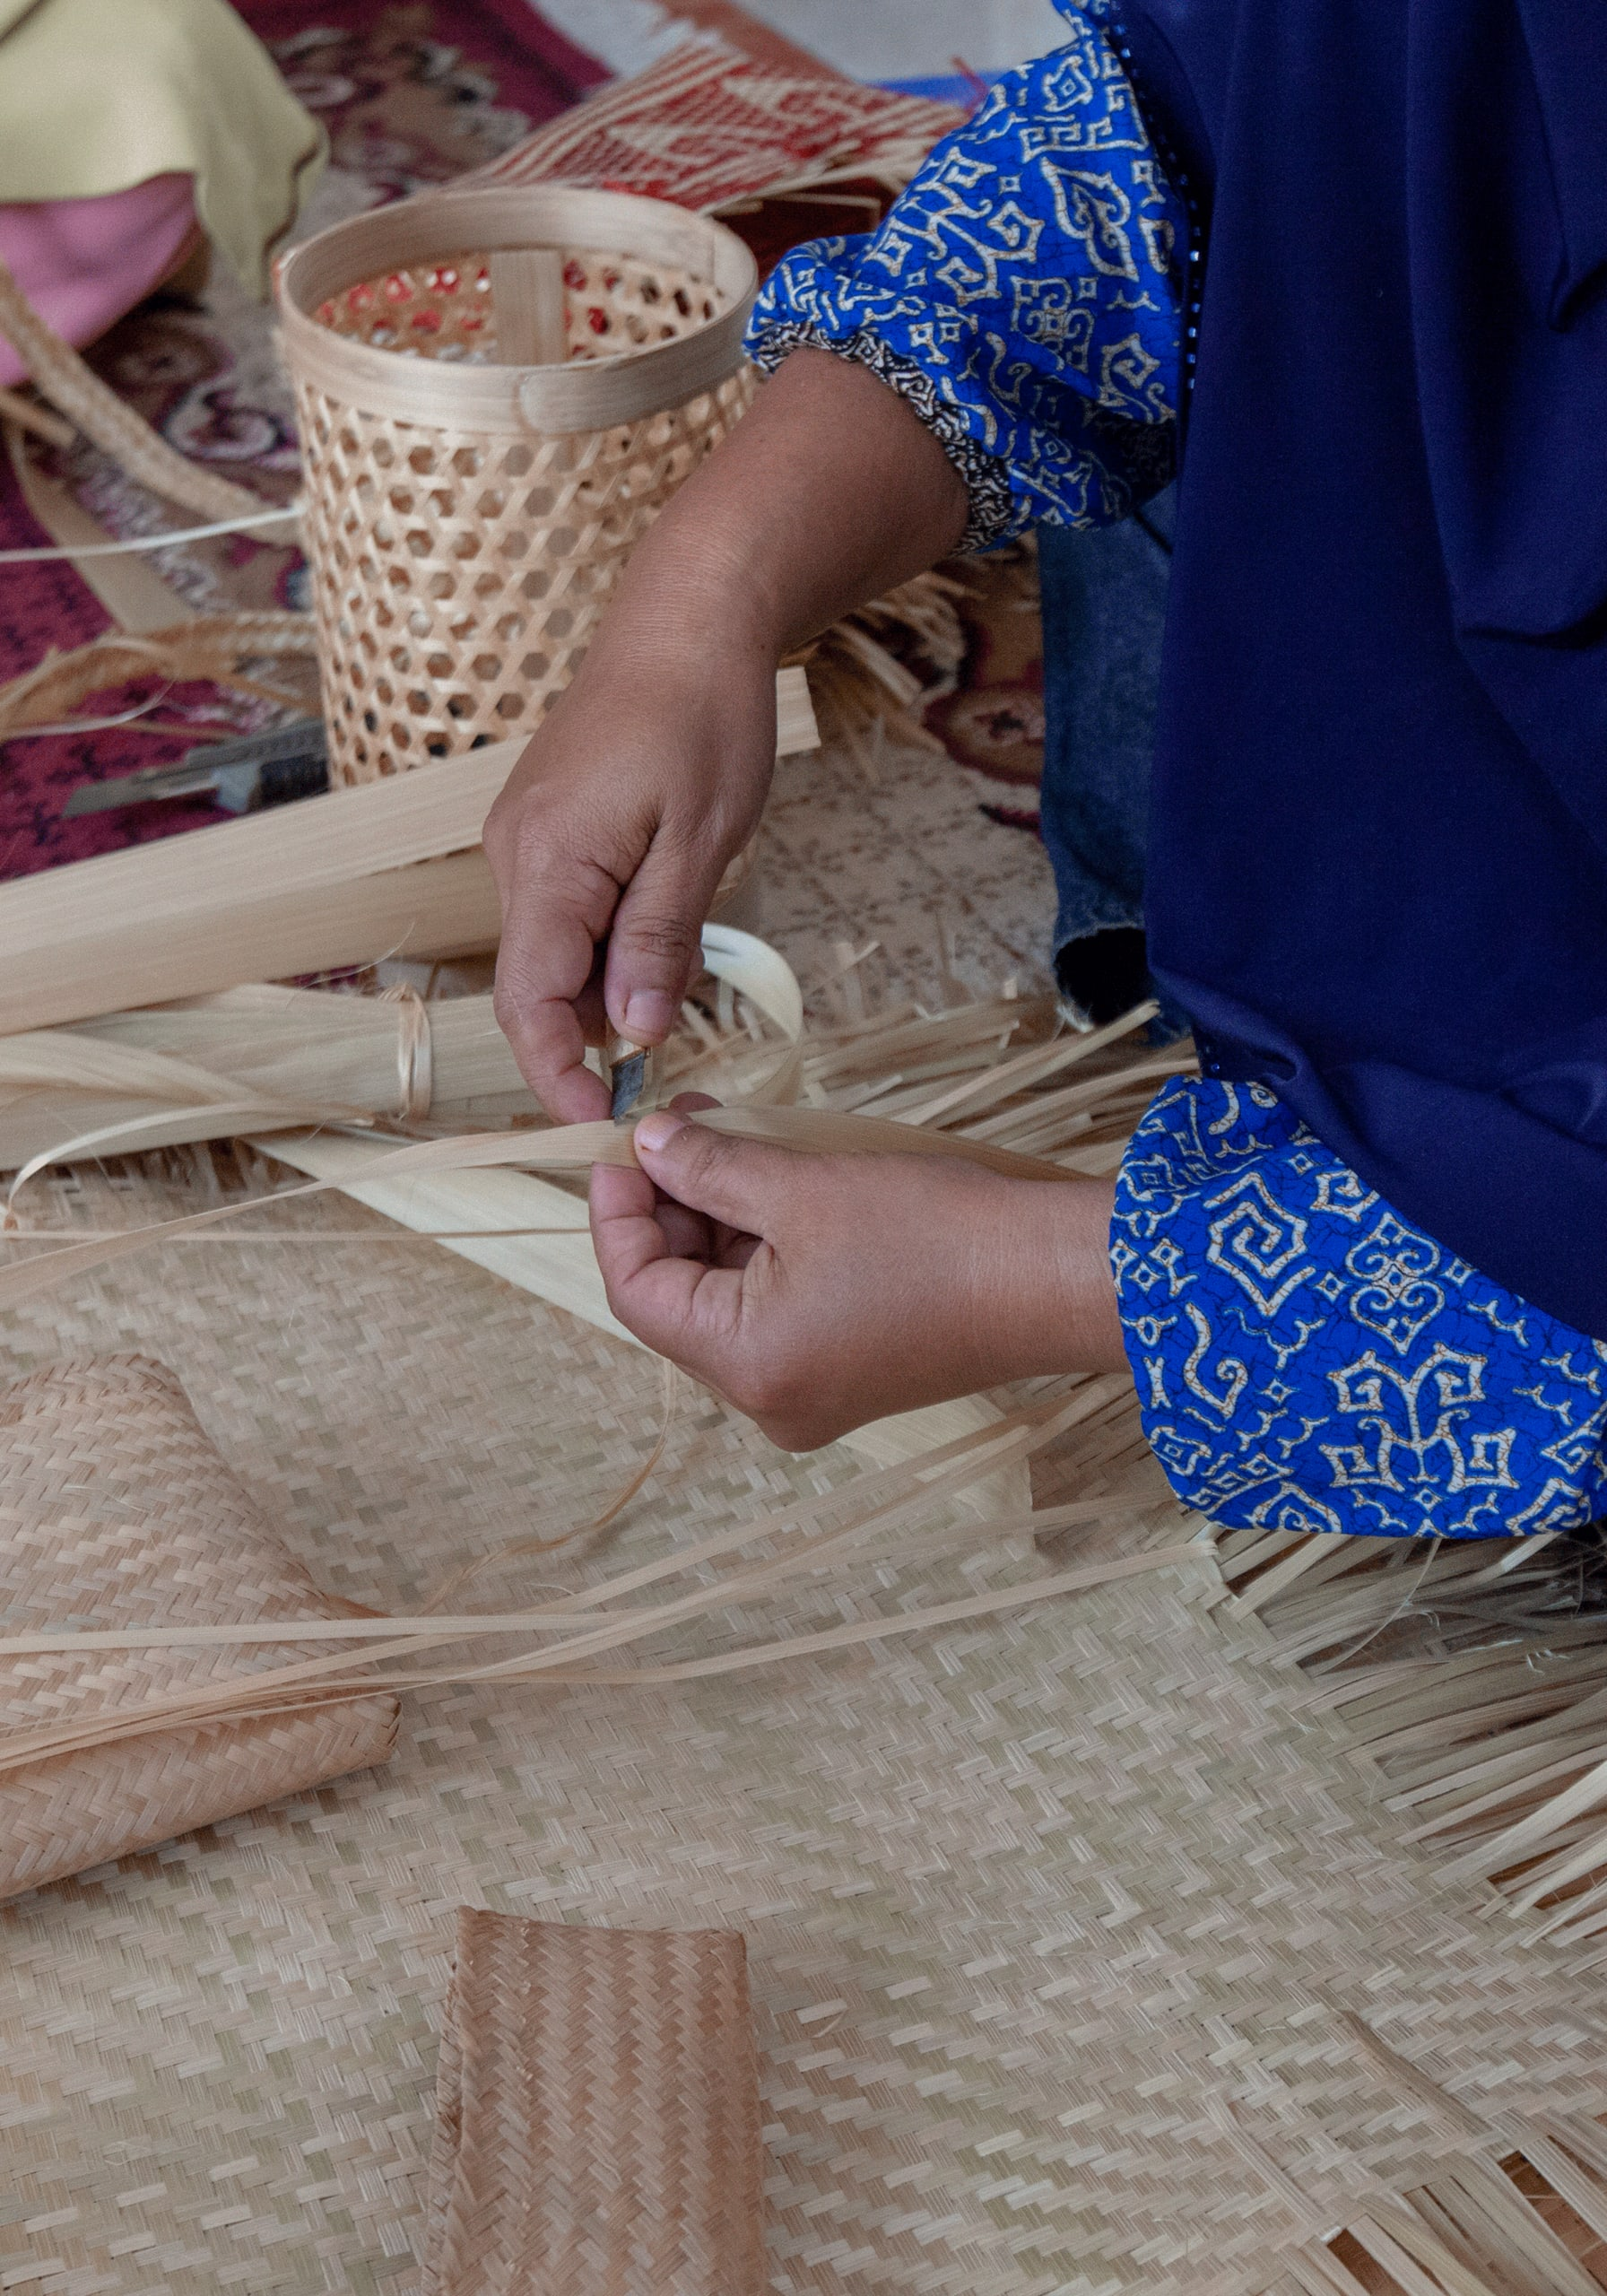 Baskets and mats made of bamboo, Tasikmalaya